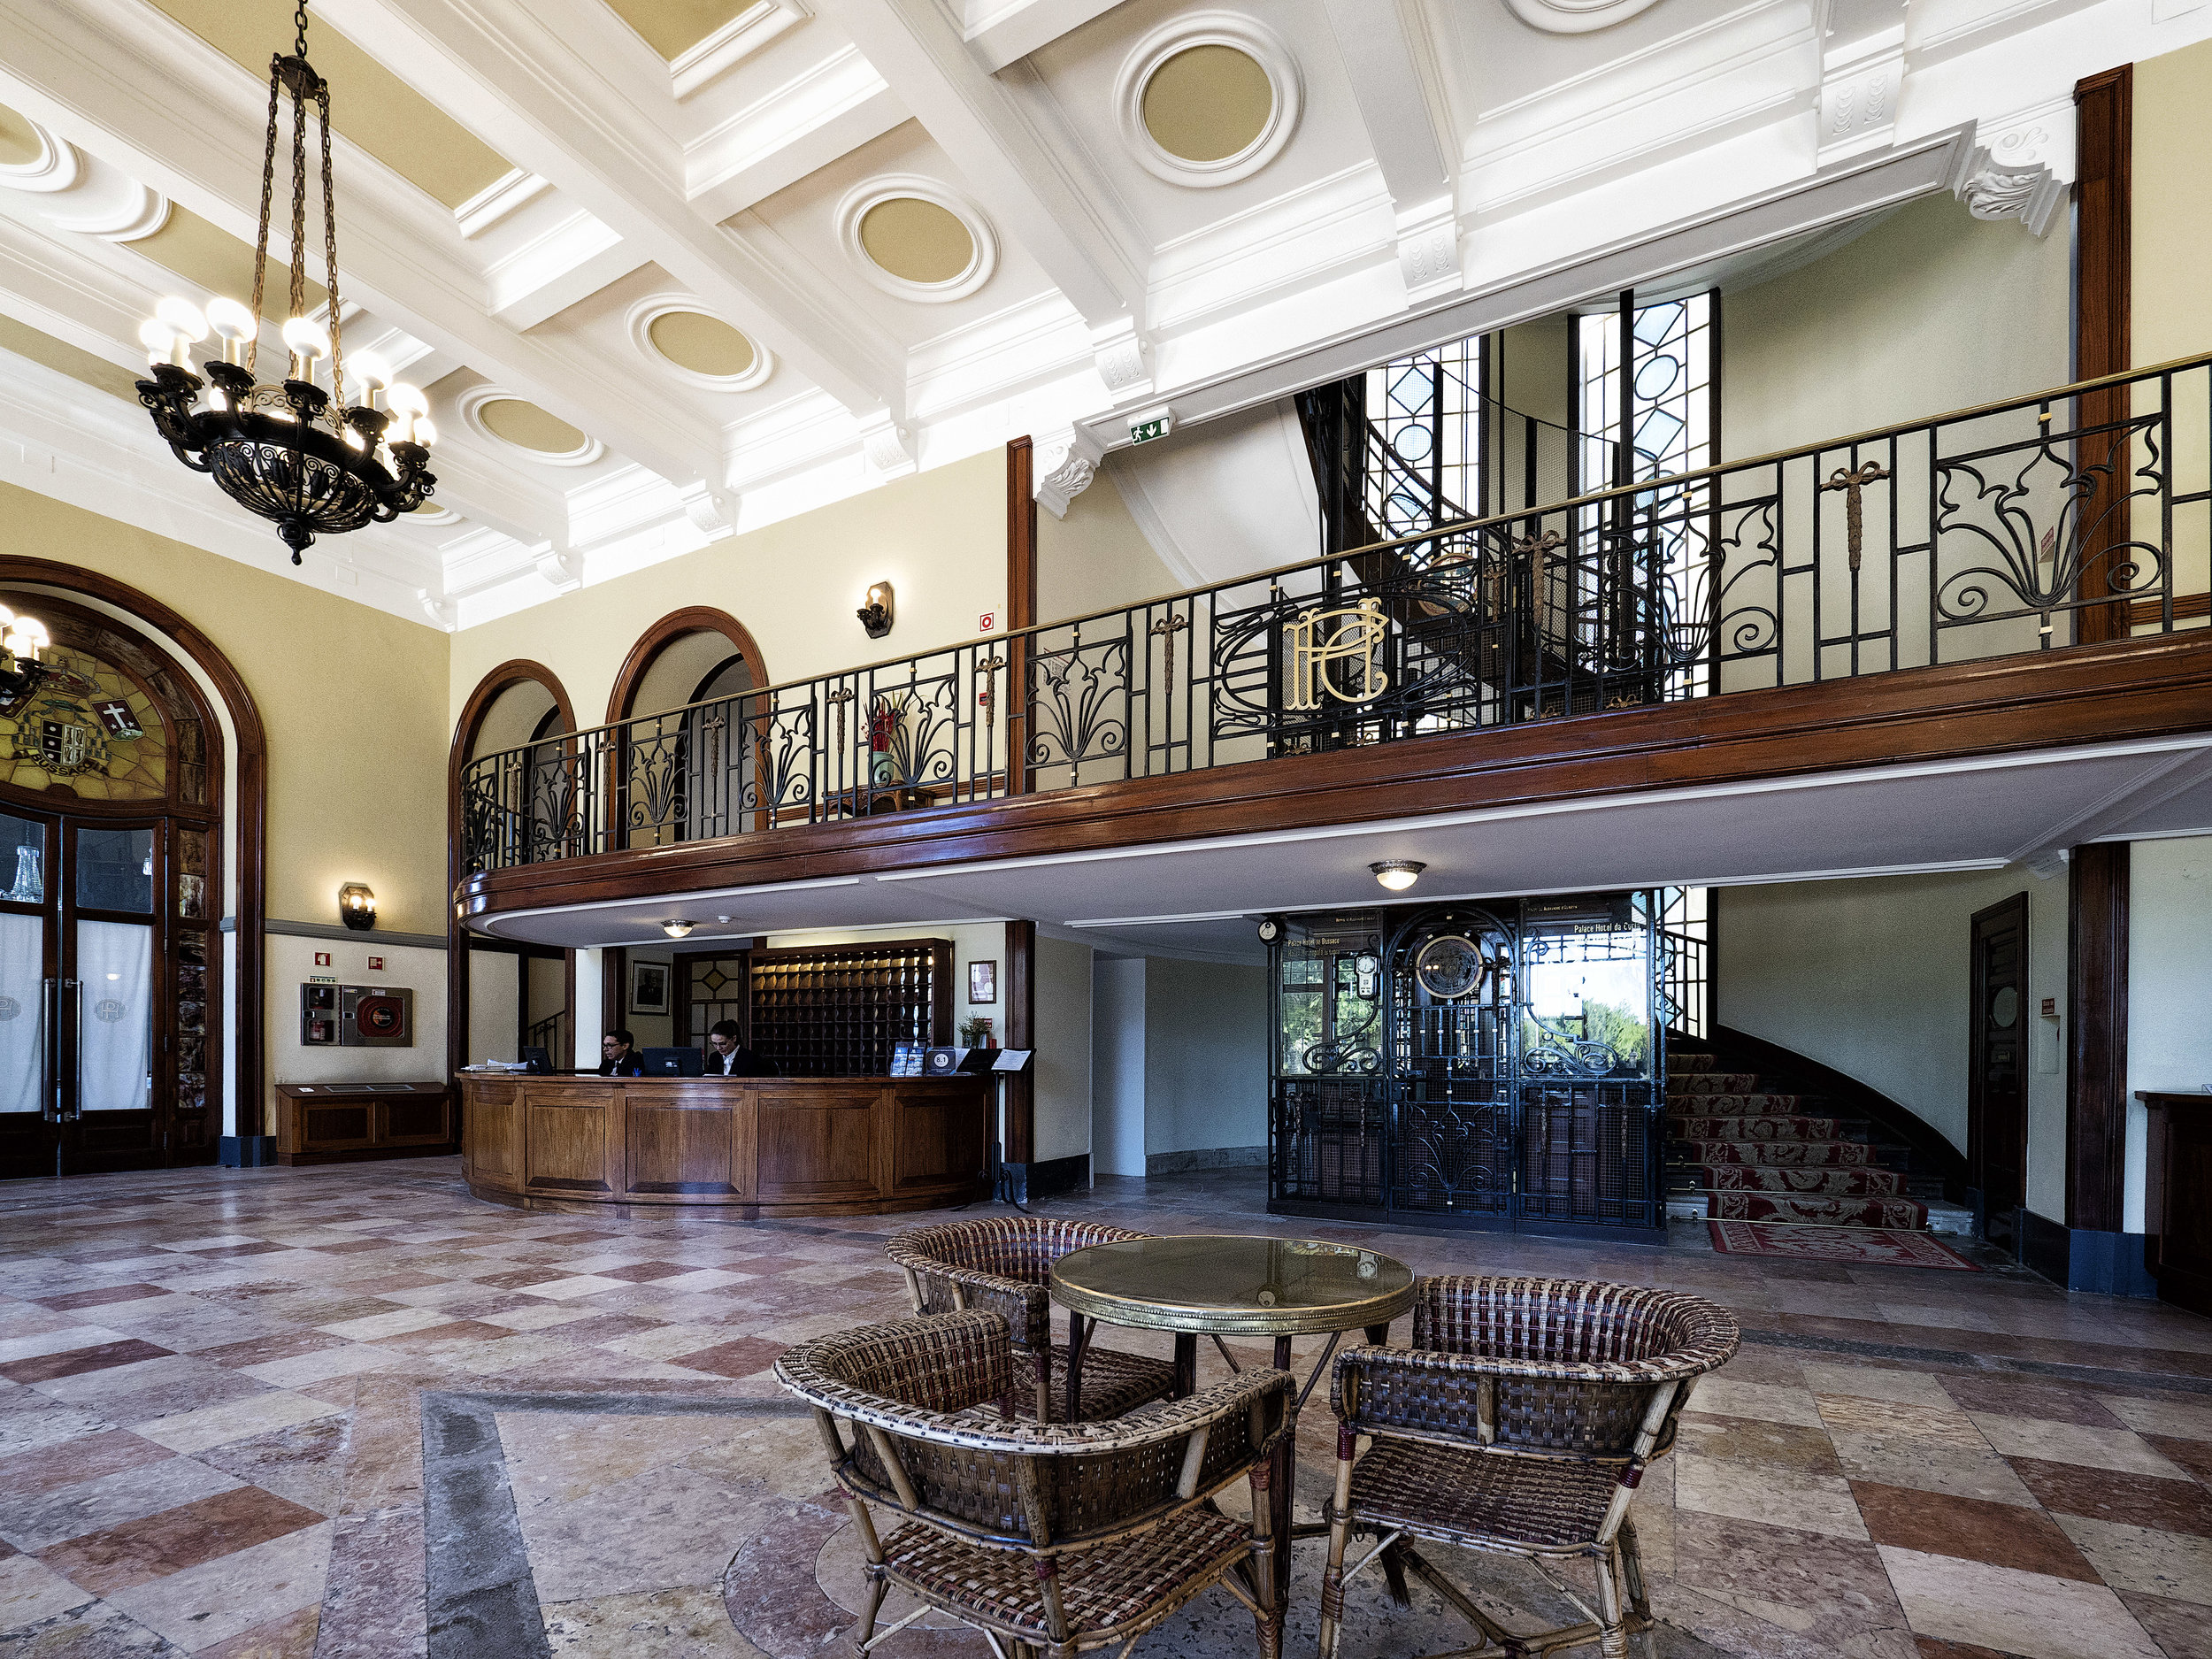 The interior of Curia Palace Hotel